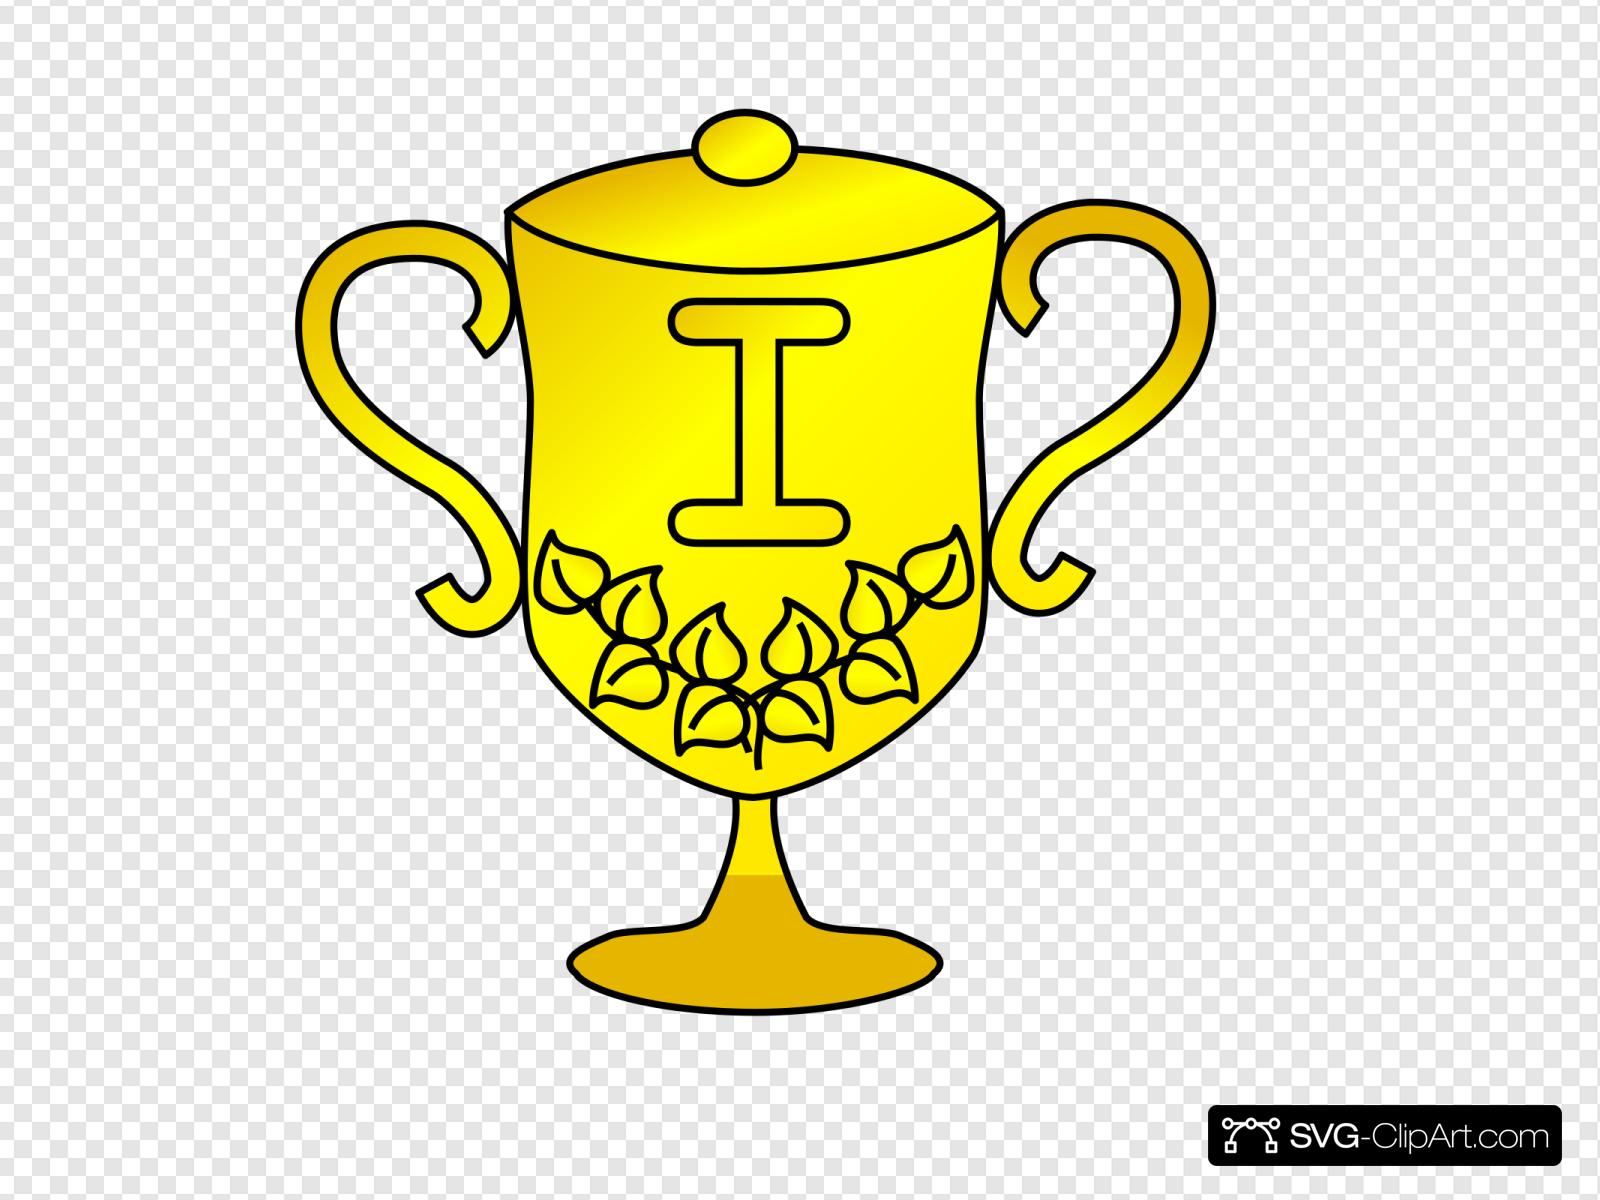 Trophy Stock Photography Award Clip Art - Trophies Cup Clip Art - Free  Transparent PNG Clipart Images Download